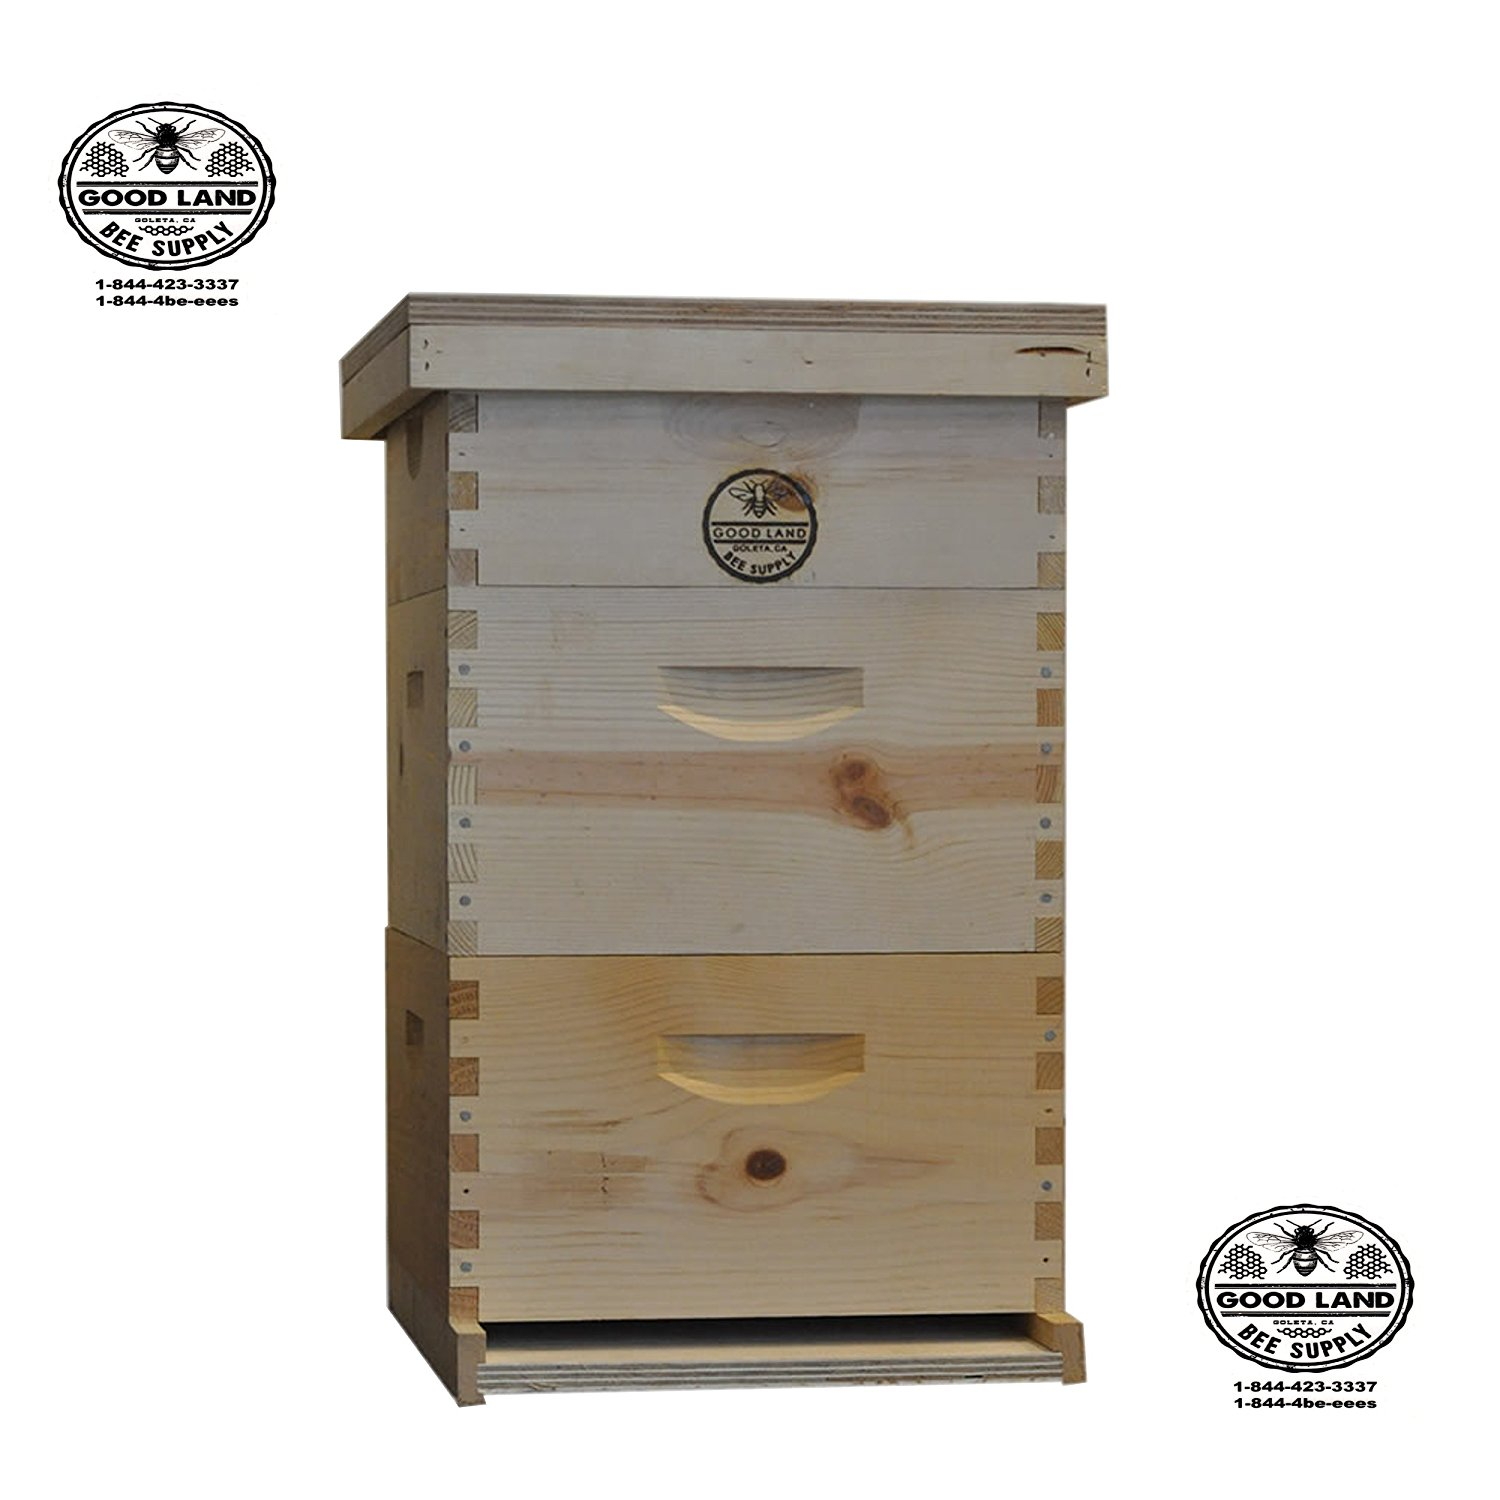 Goodland Bee Supply 3-Tier Bee Hive Kit